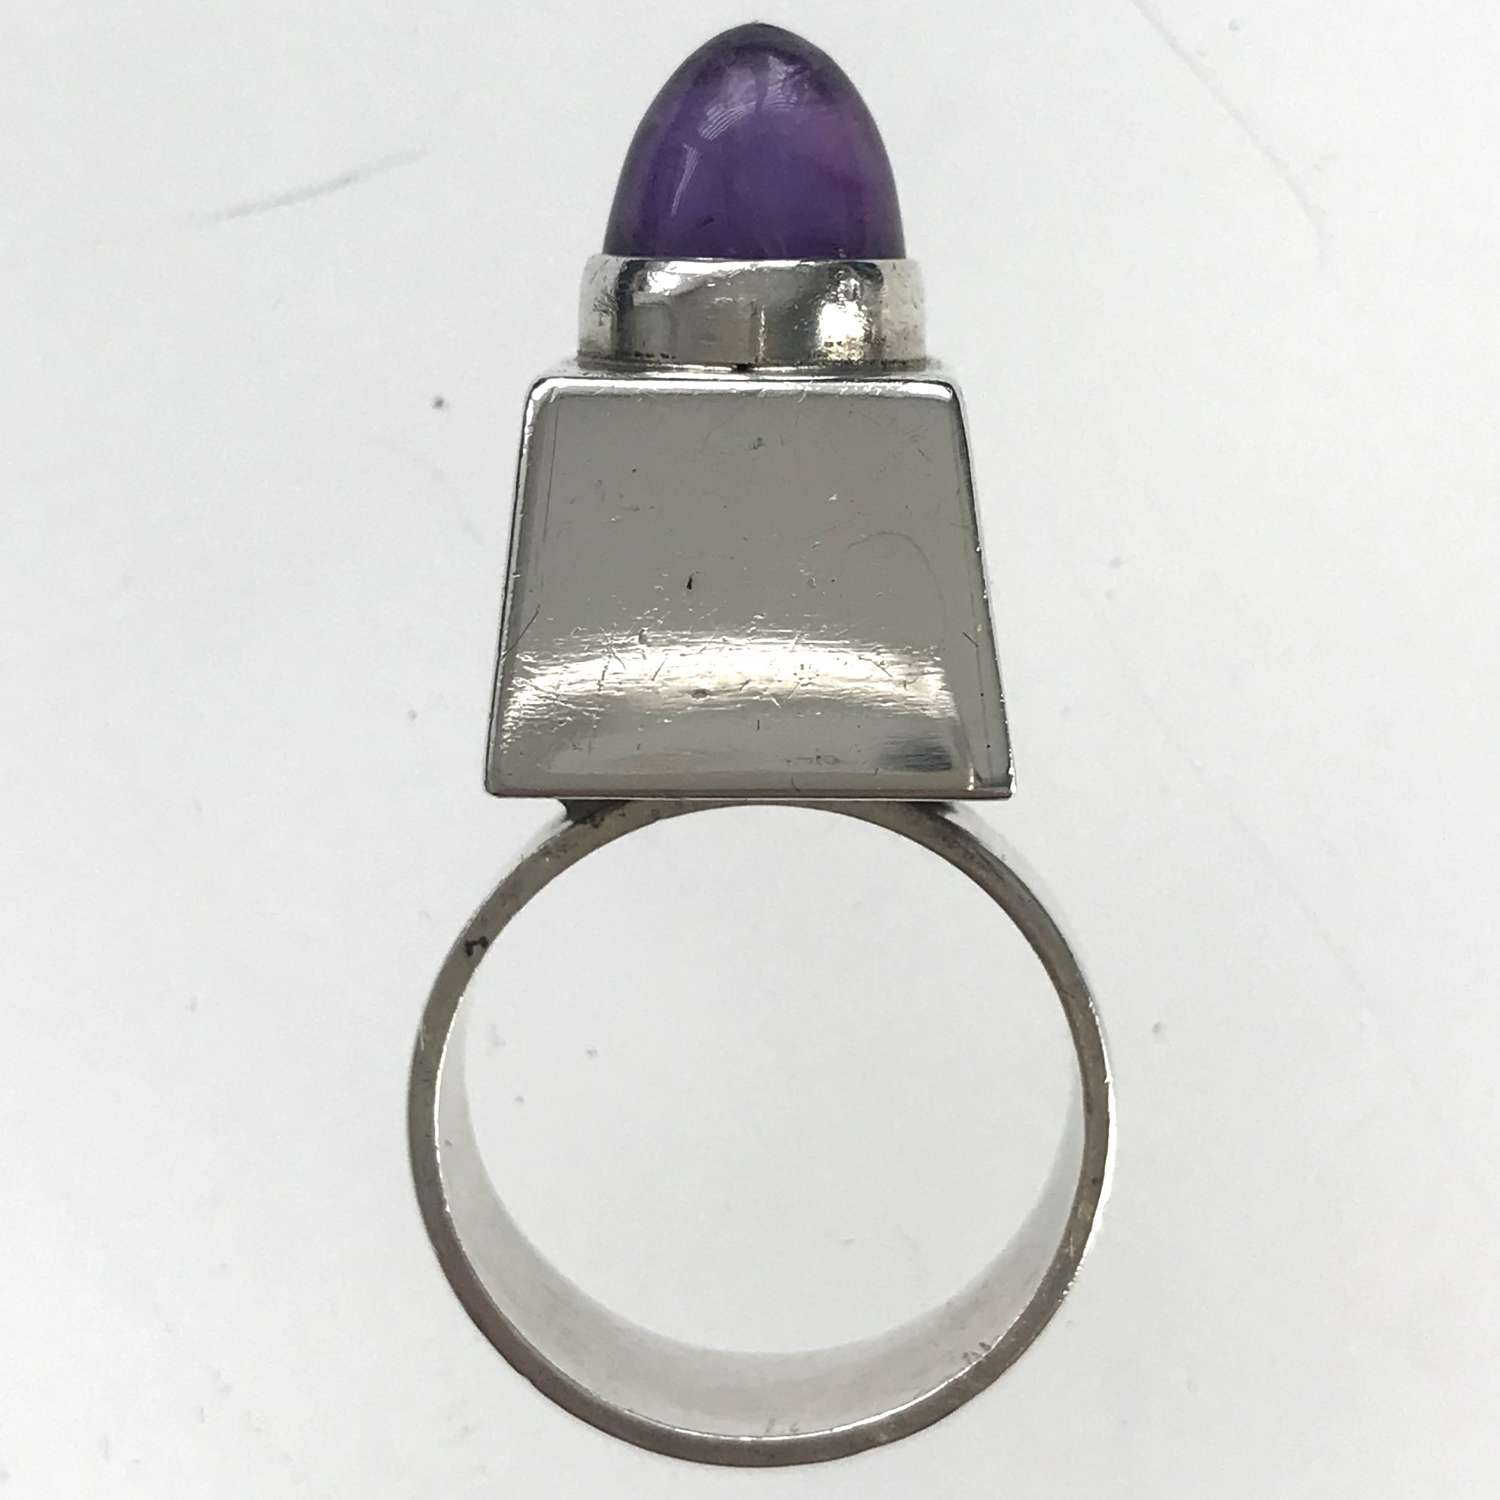 Niels Erik From silver ring with amethyst cabochon, Denmark 1960s-70s